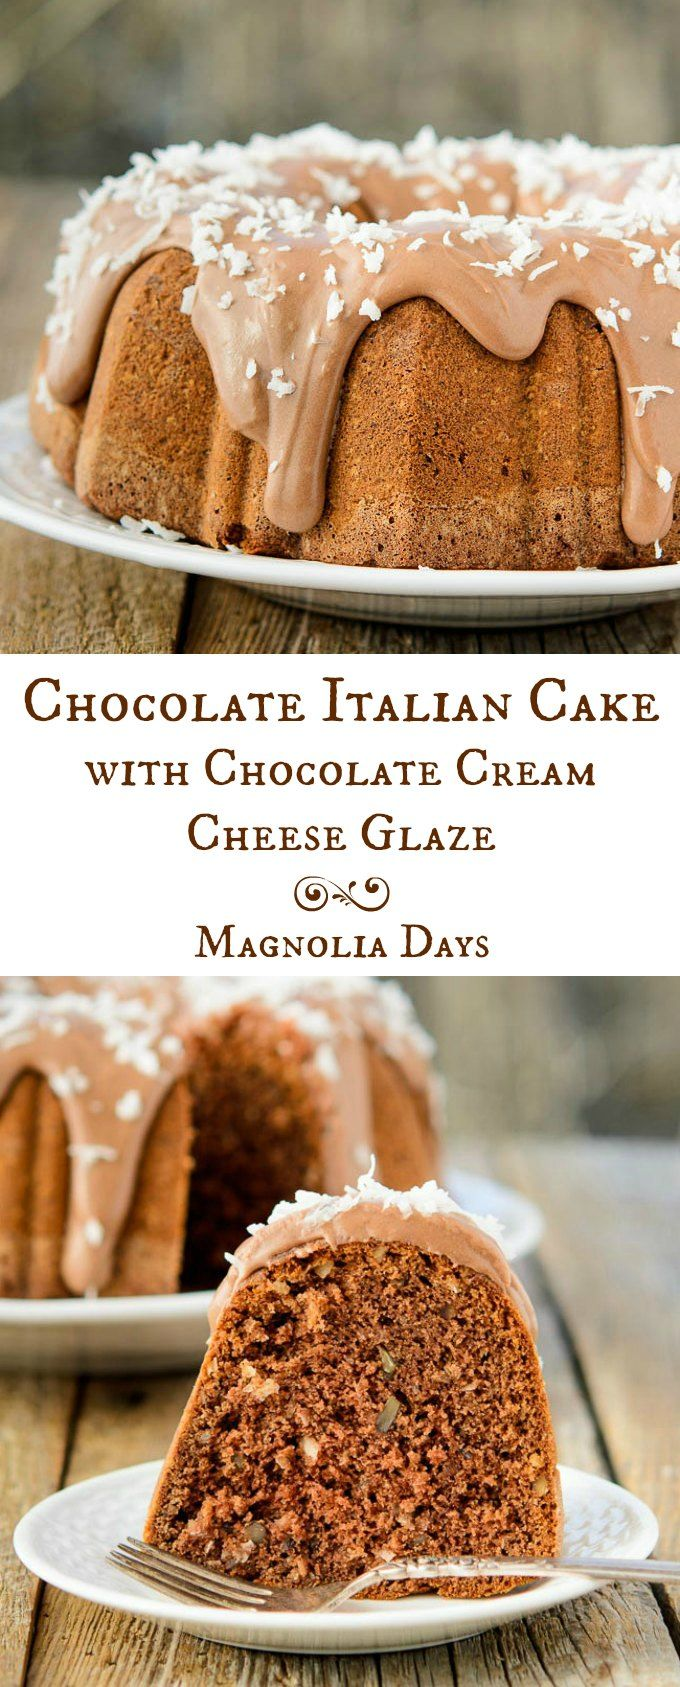 Chocolate Italian Cake with Chocolate Cream Cheese Glaze is German Chocolate Cake meets Italian Cream Cake in a most delicious way. And it's a bundt too!